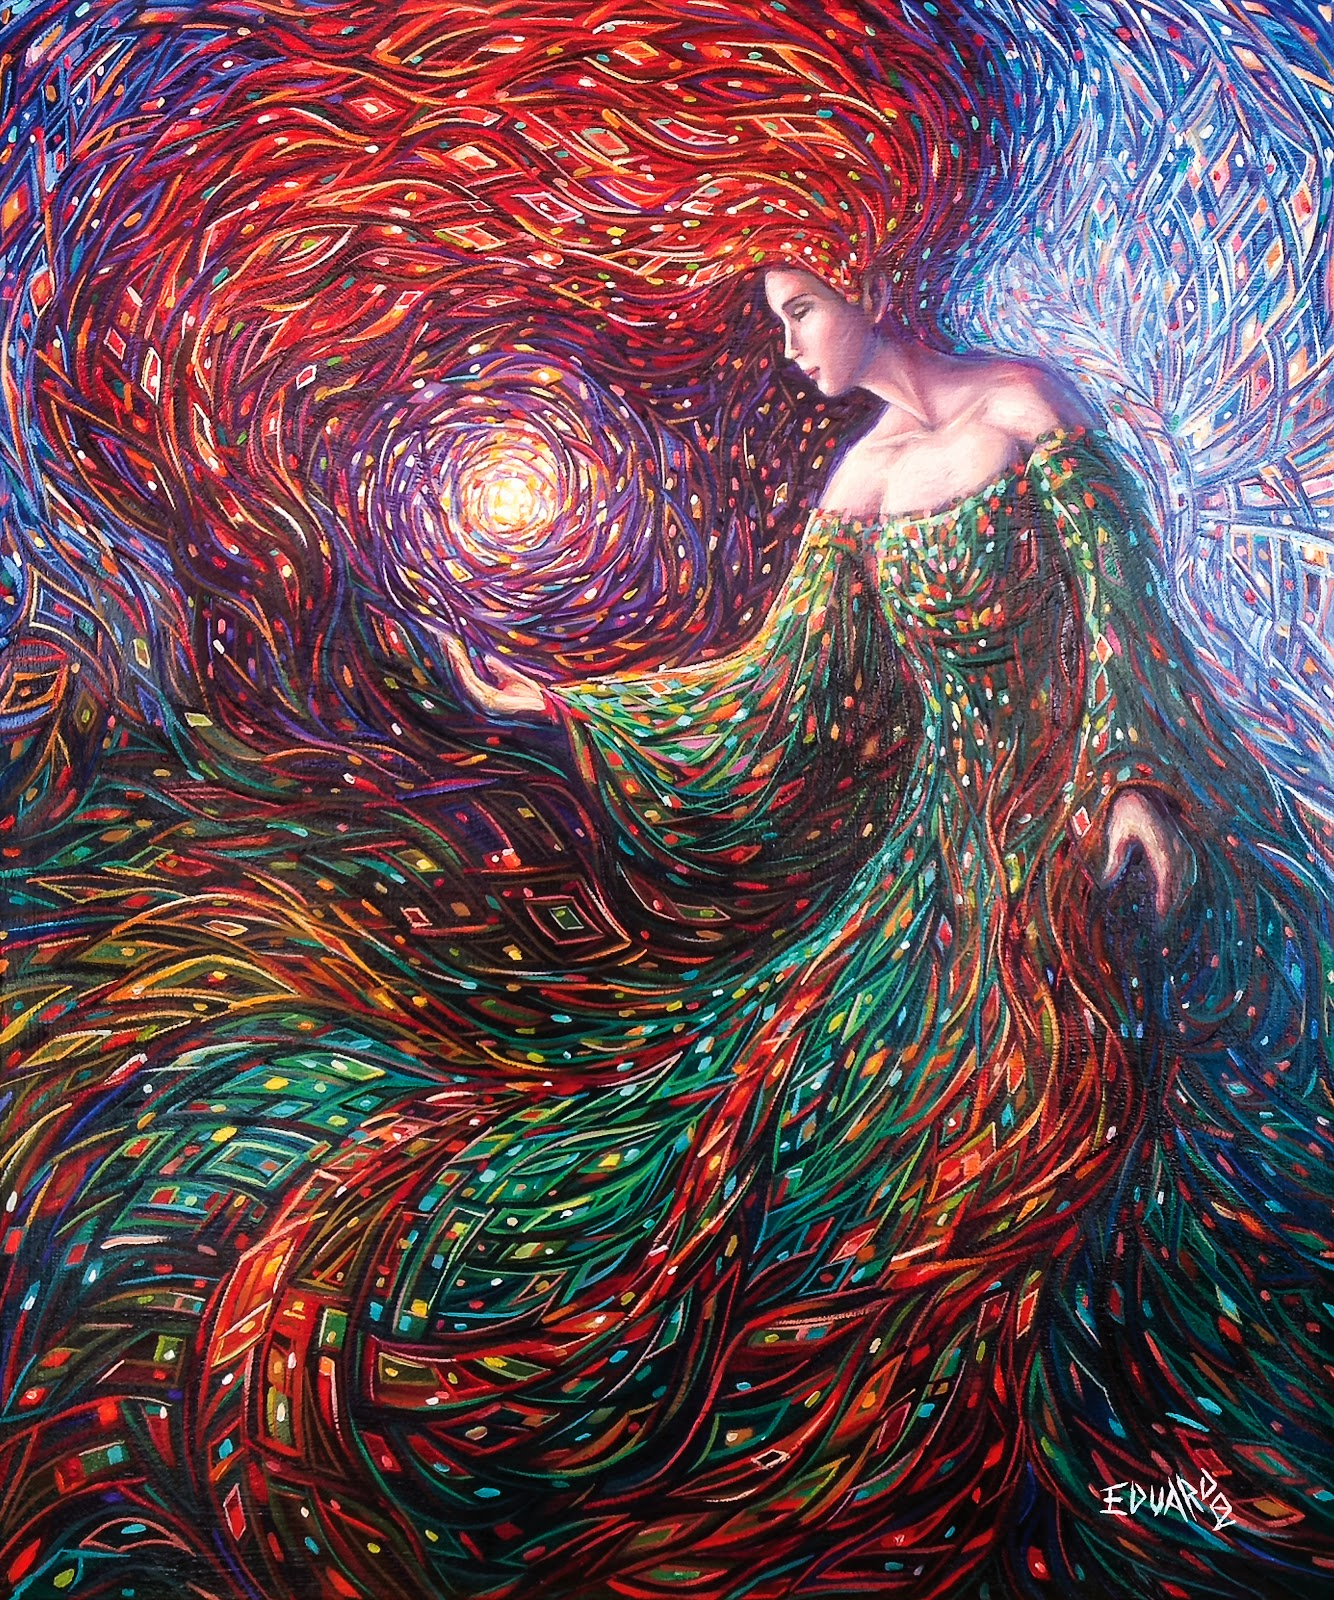 06-Manifestation-of-Light-Eduardo-R-Calzado-Paintings-in-Swirls-of-Colour-www-designstack-co